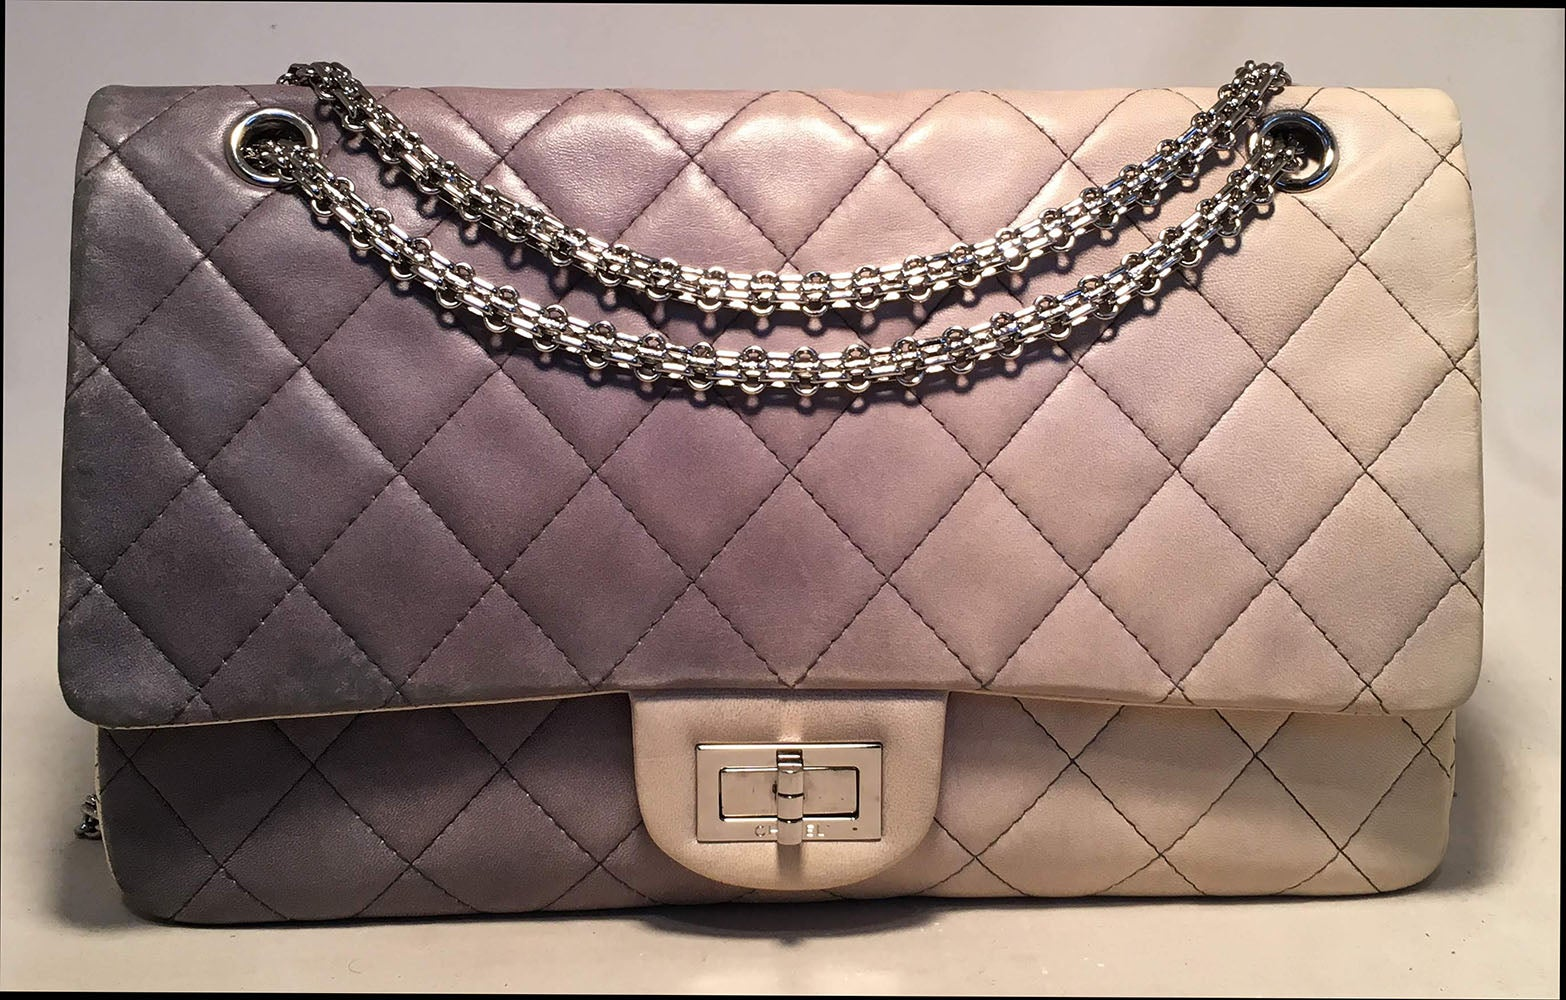 CHANEL Double Hybrid Degrade Ombre Grey Leather 2.55 Reissue 227 Classic  Flap For Sale at 1stdibs 85690138927f5